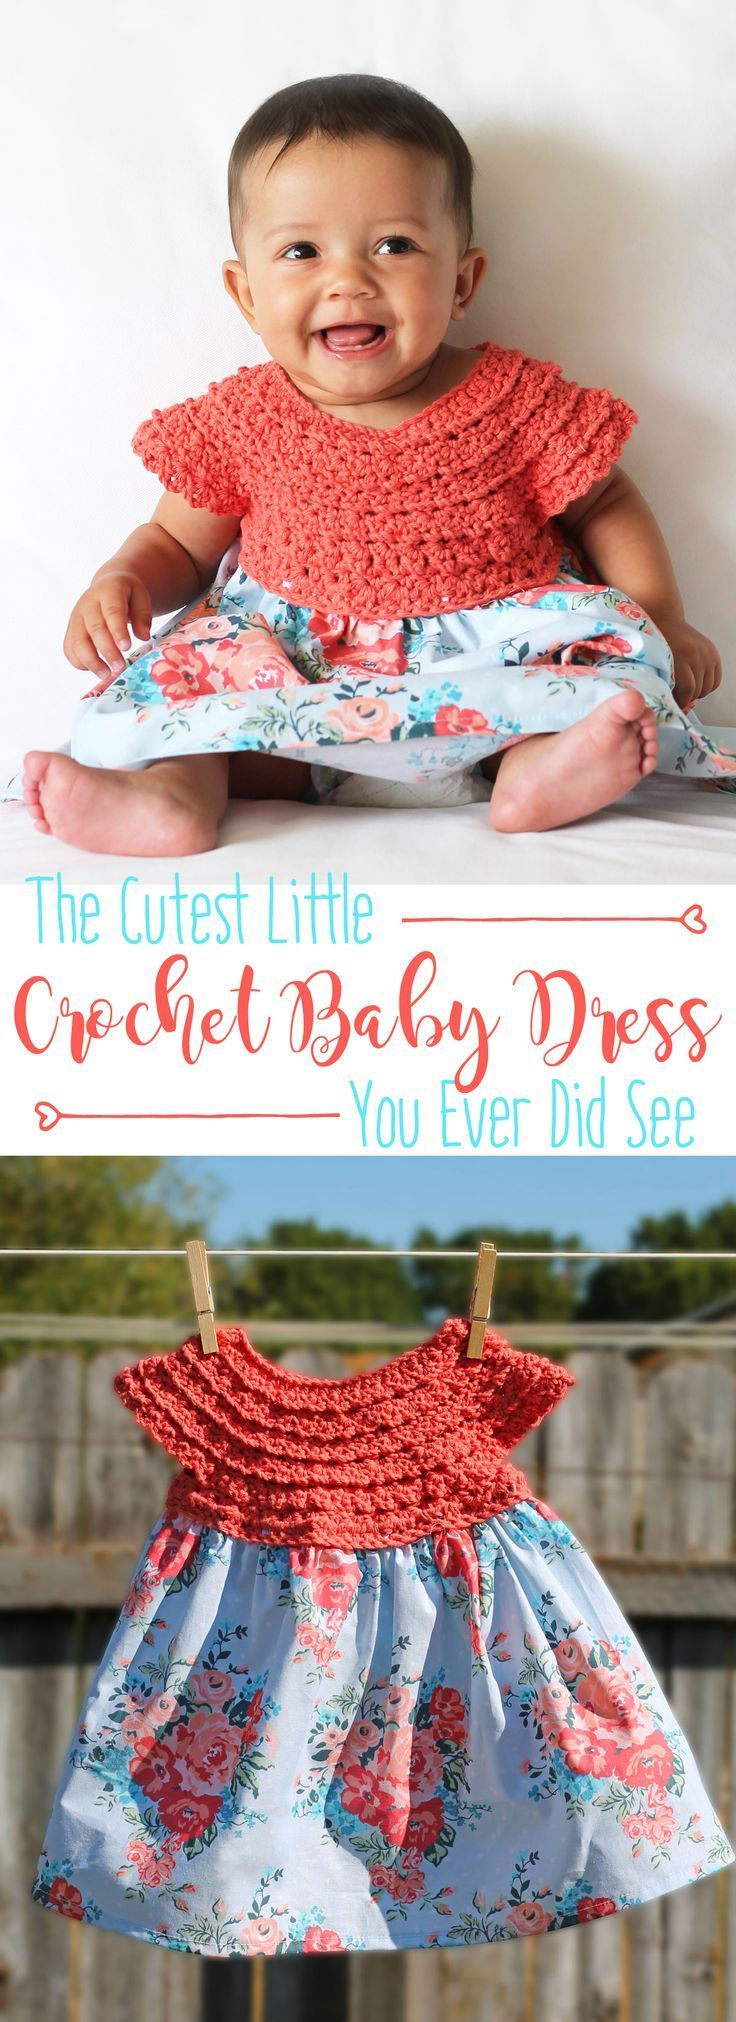 Beautiful crochet dresses for kids trendy - Crochet This Adorable Baby Dress With Fabric Skirt Free Crochet Pattern Such A Great